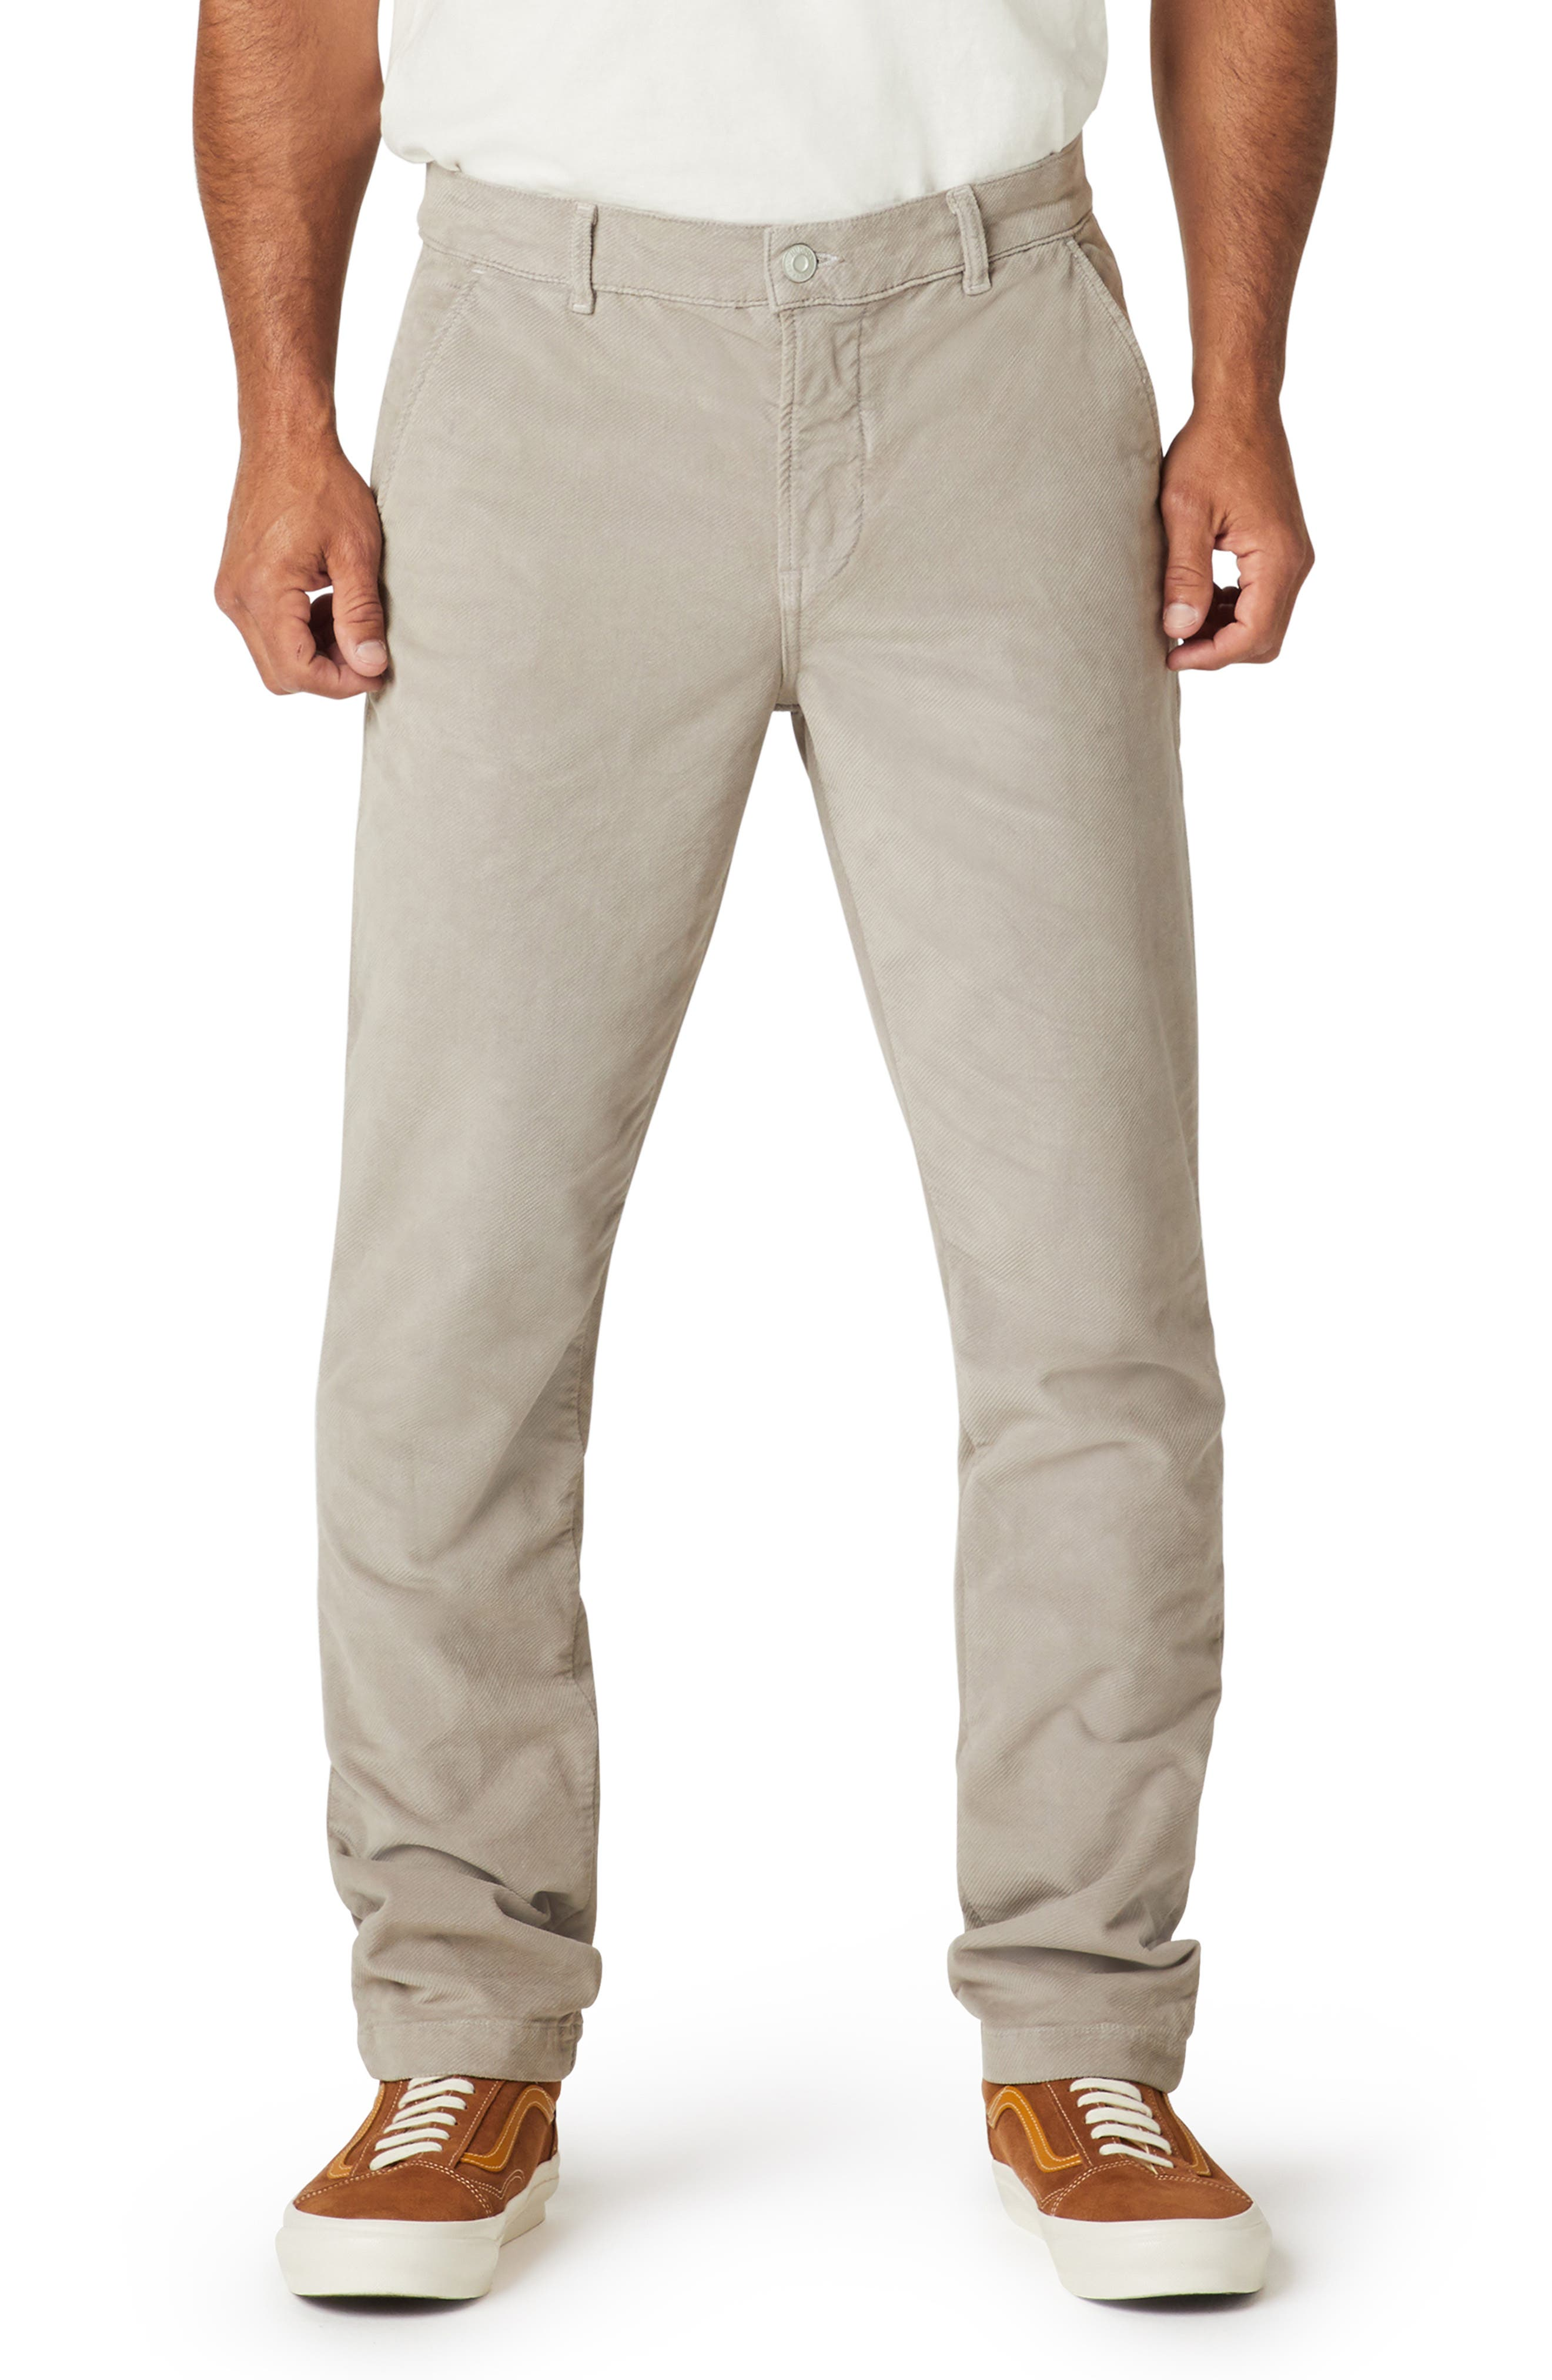 Image of HUDSON Jeans Classic Slim Fit Straight Leg Chino Pants